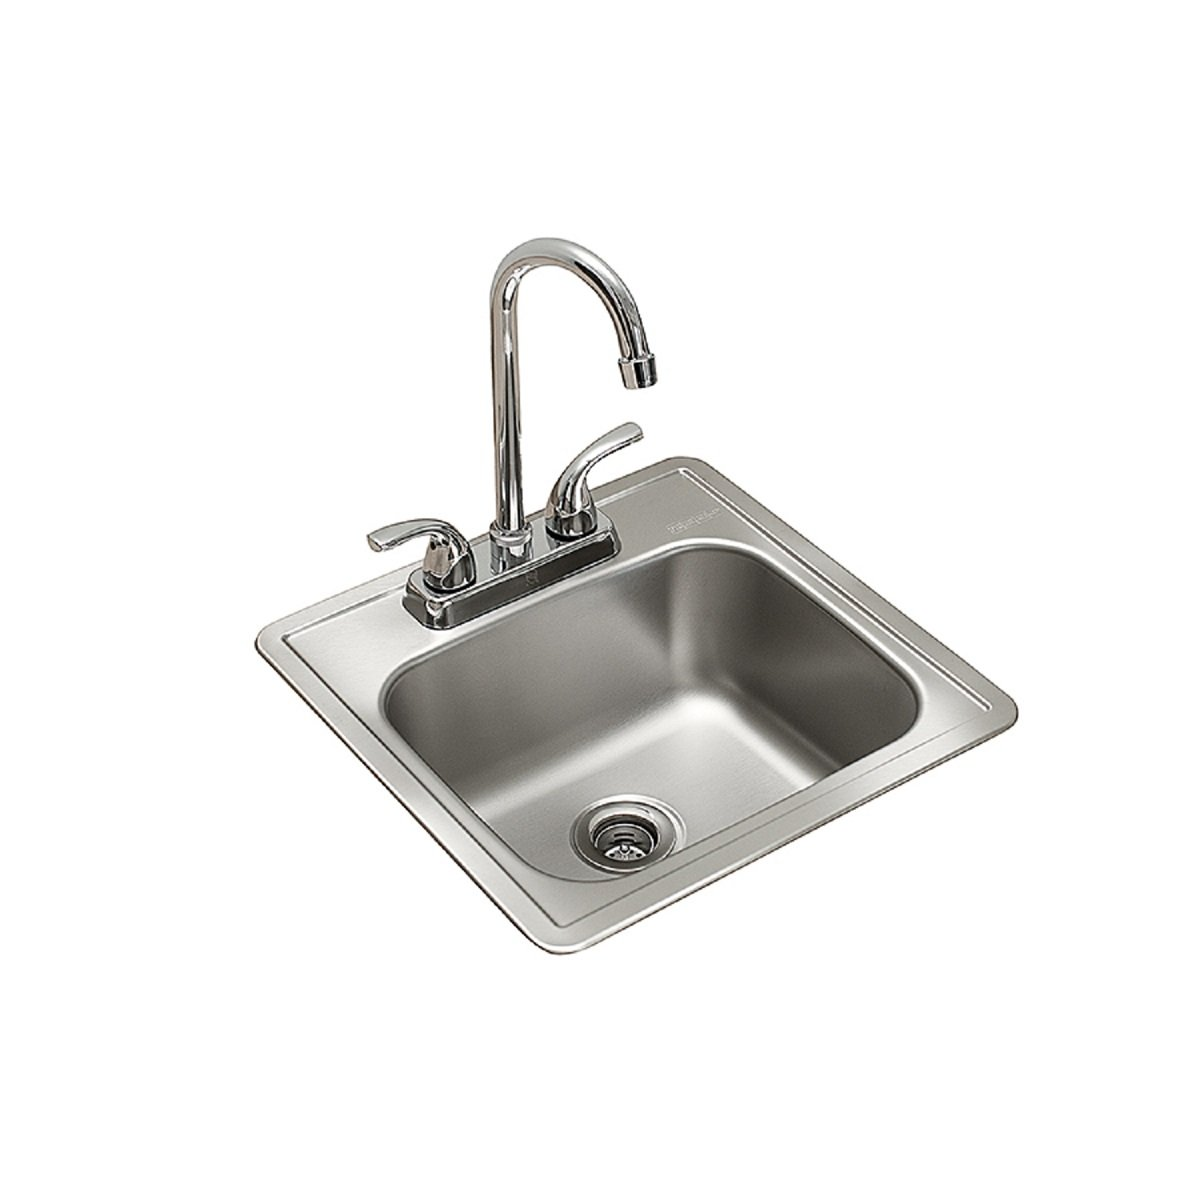 Kindred Essentials All-in-One Kit Drop-in Bar or Utility Sink